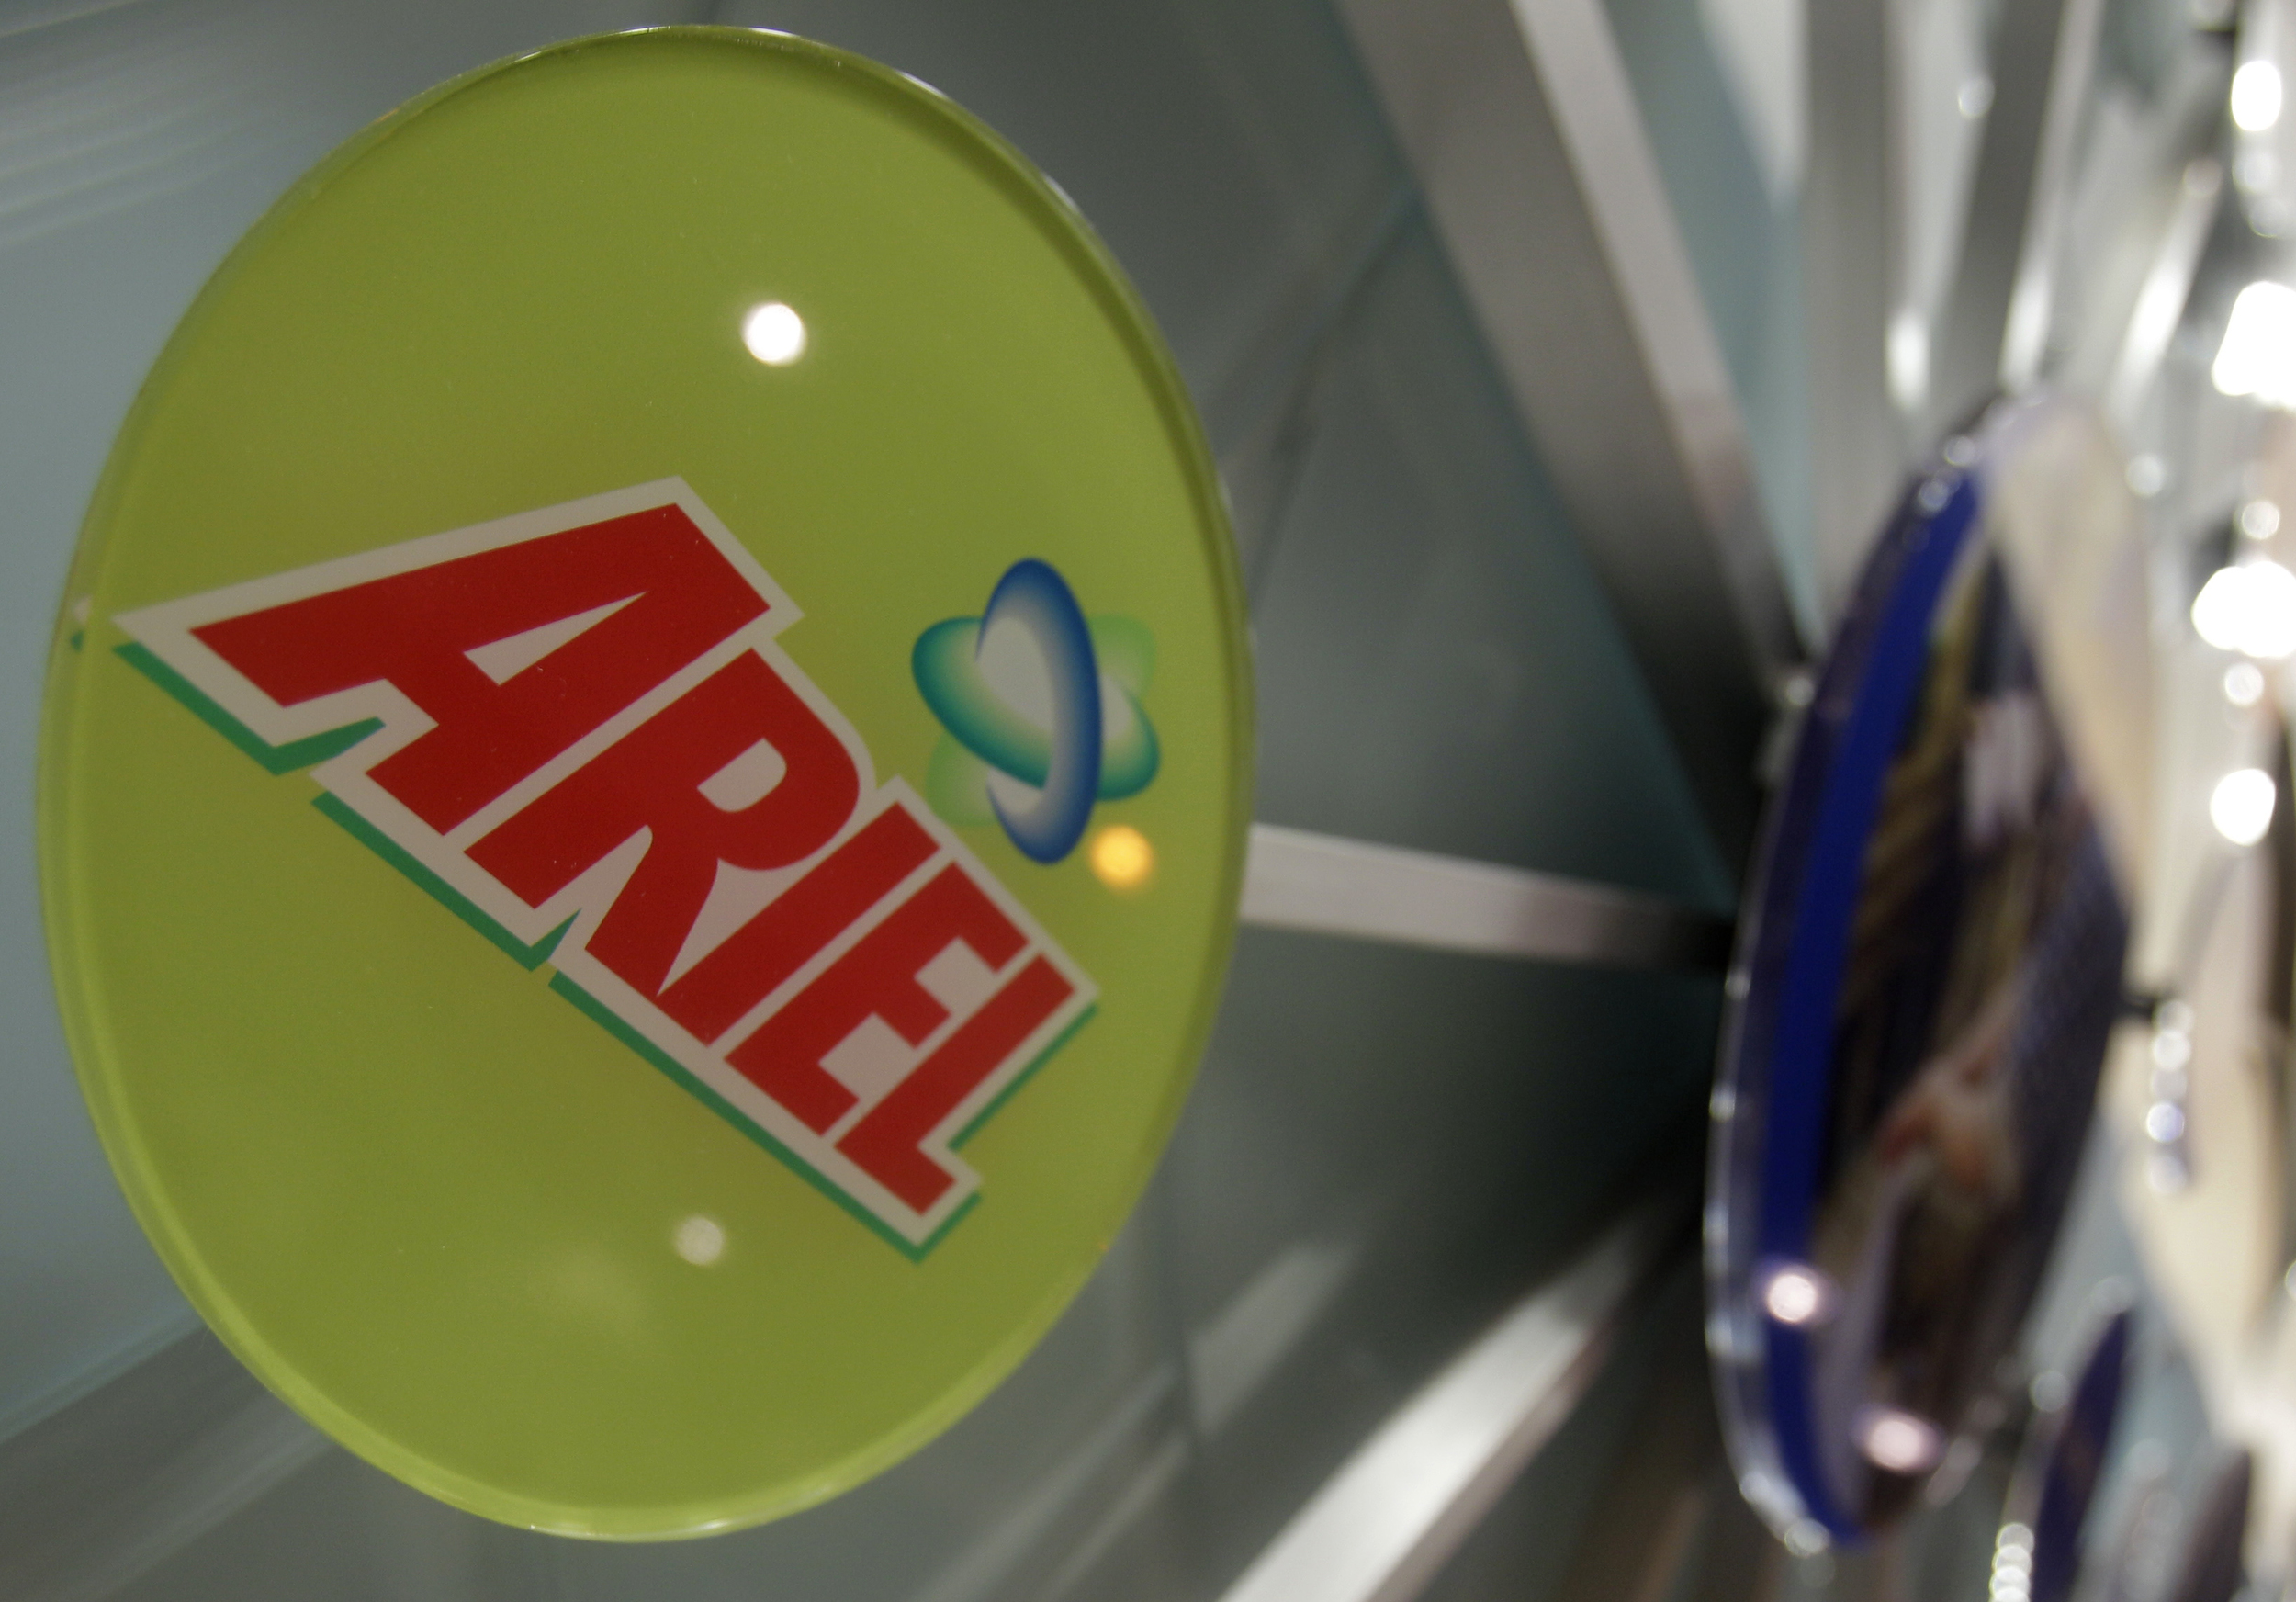 procter & gamble ariel detergent essay P&g is the world's largest and most profitable consumer products company, with nearly $84 billion in sales and 25 billion-dollar brands.